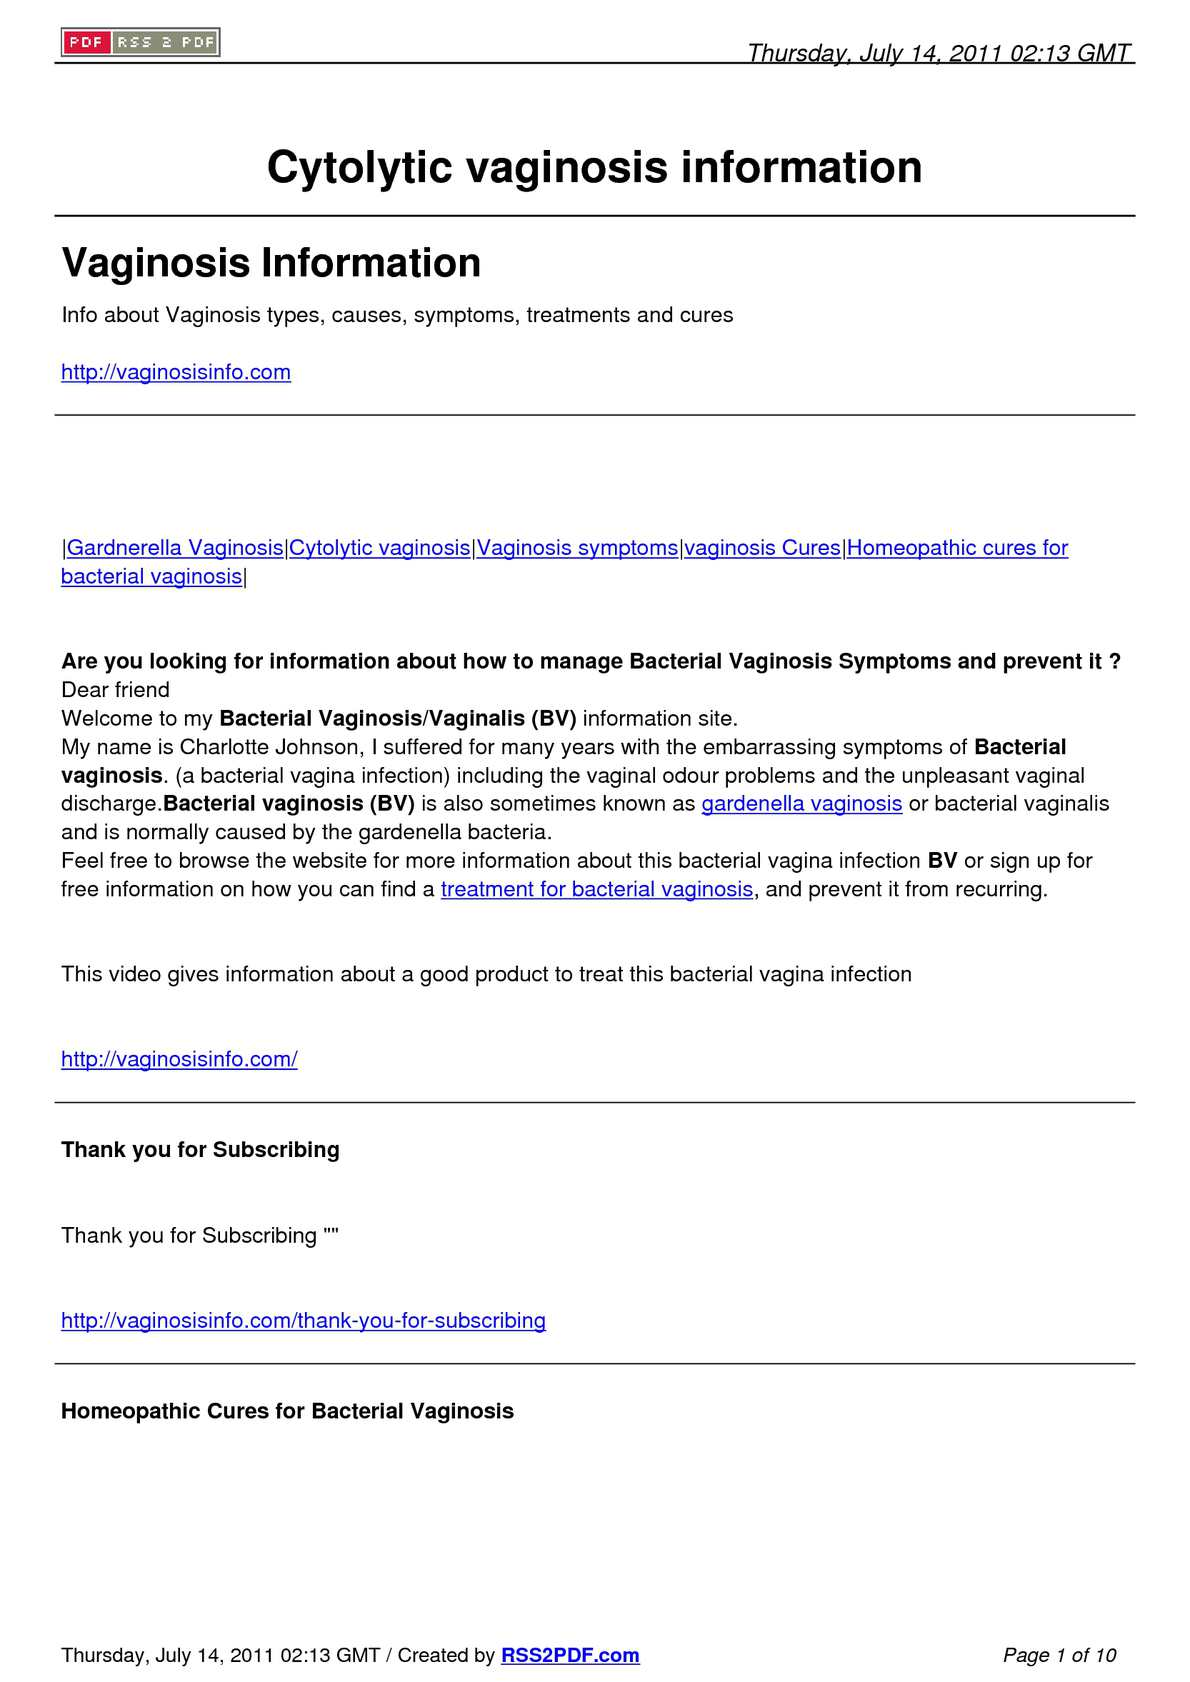 Calaméo - Ways to live with cytolytic vaginosis